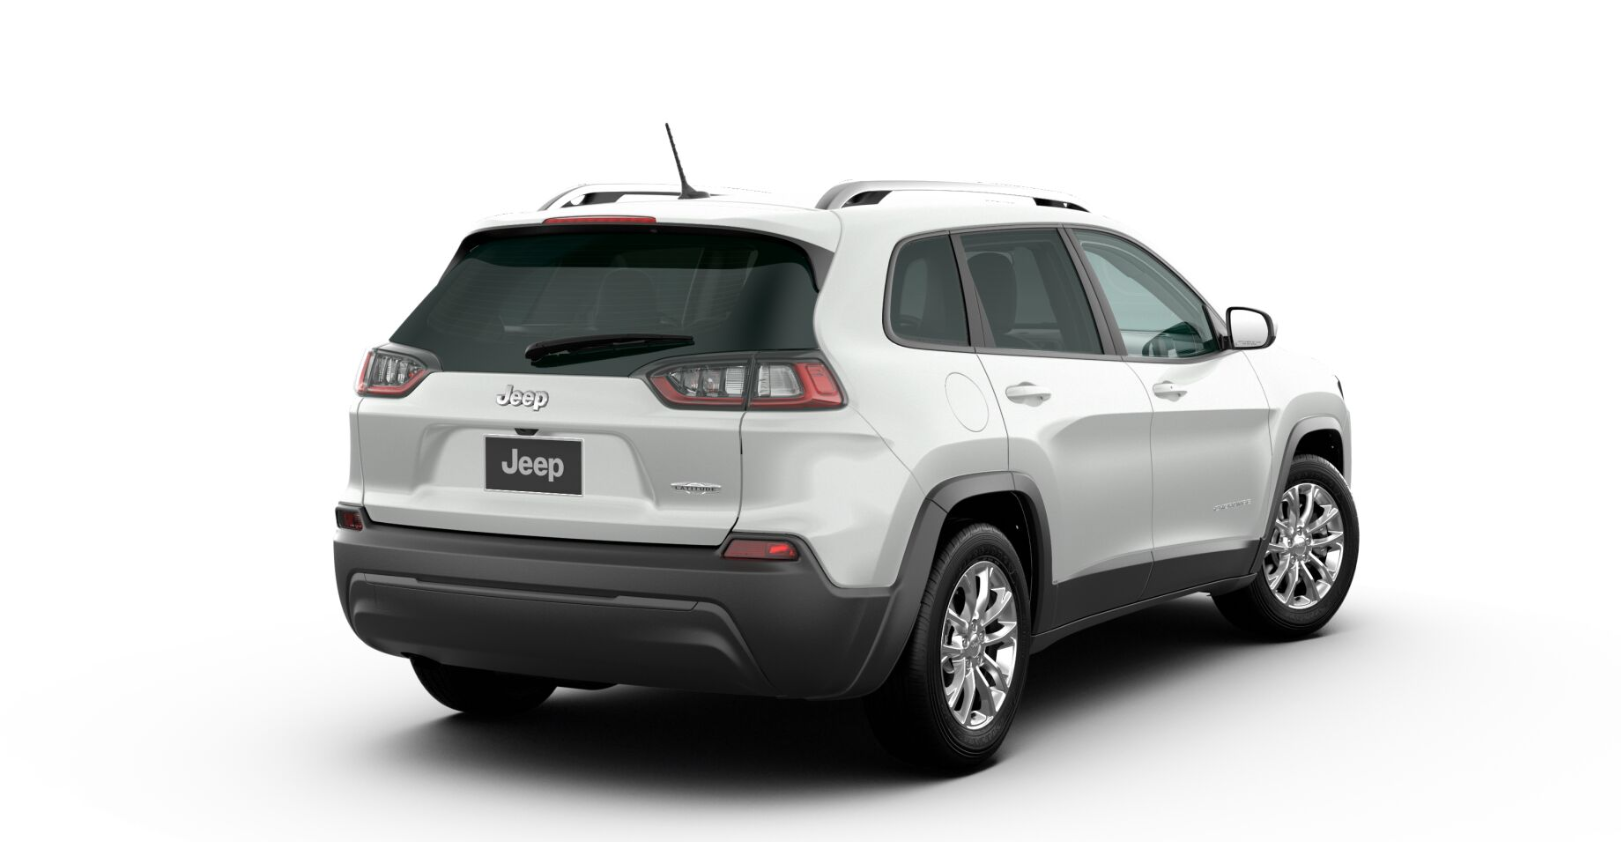 2020 Jeep Cherokee Latitude Rear White Exterior Picture